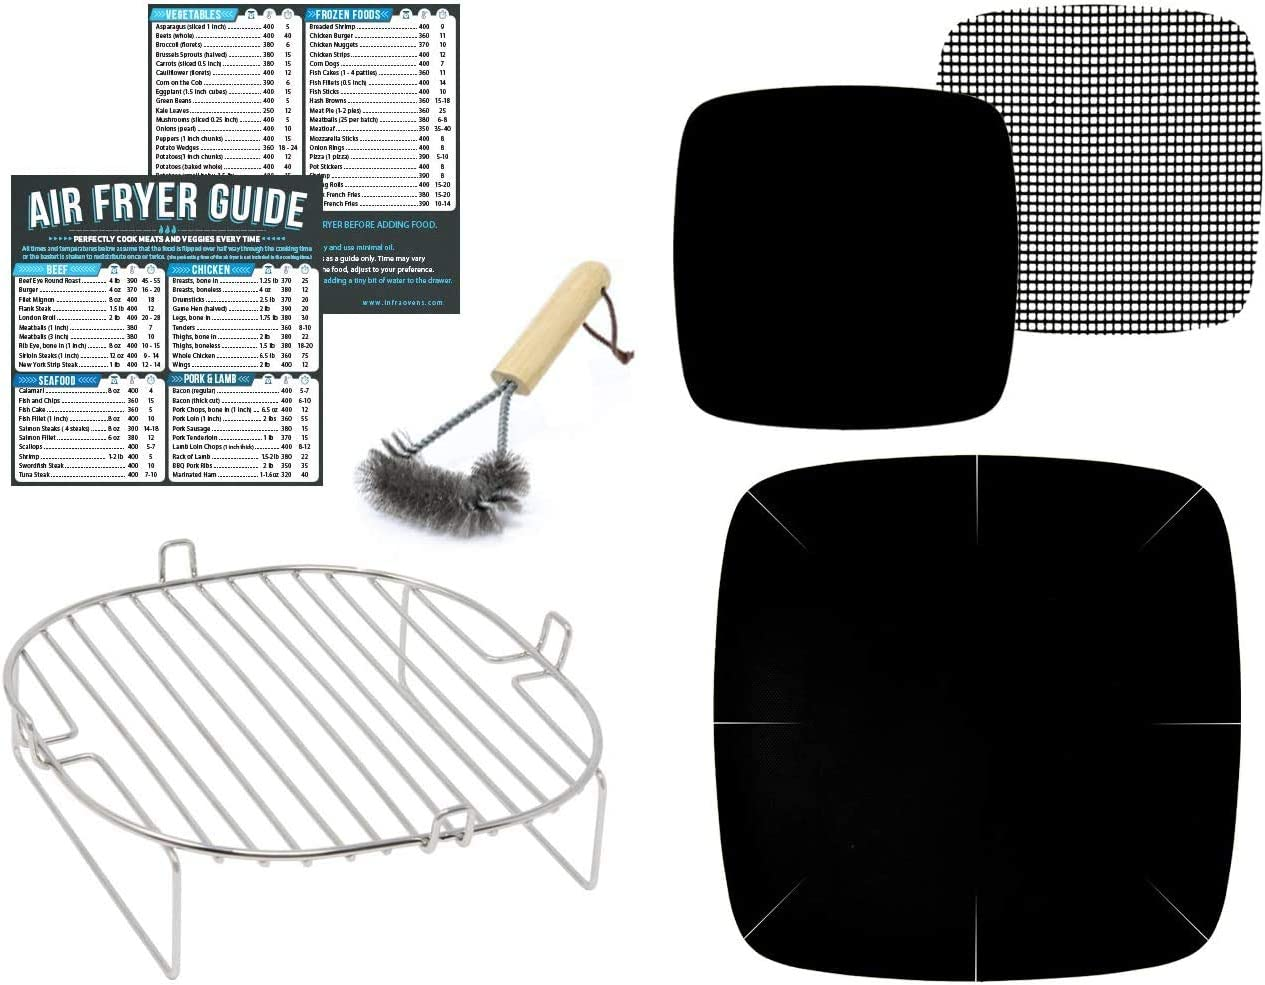 Air Fryer Accessories Compatible with Philips, Secura, Emeril Lagasse, Enklov + More | For 7 x 7 inch Square Basket | Stainless Steel Rack, Magnetic Cheat Sheet Guides and Grill Brush